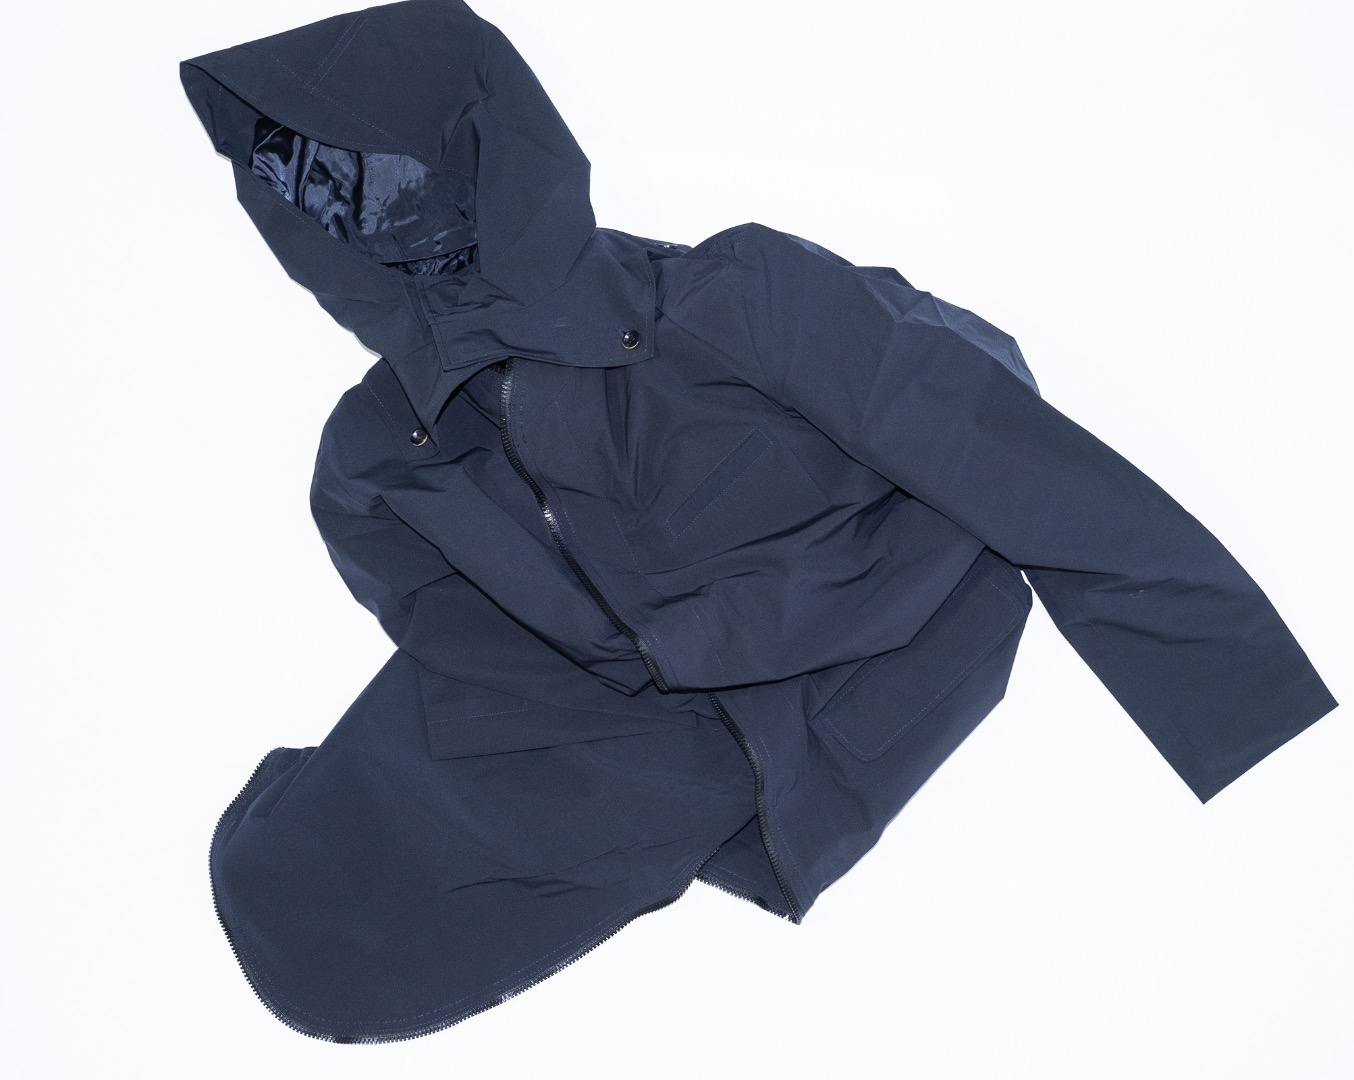 Raincoat - Navy Blue - 1